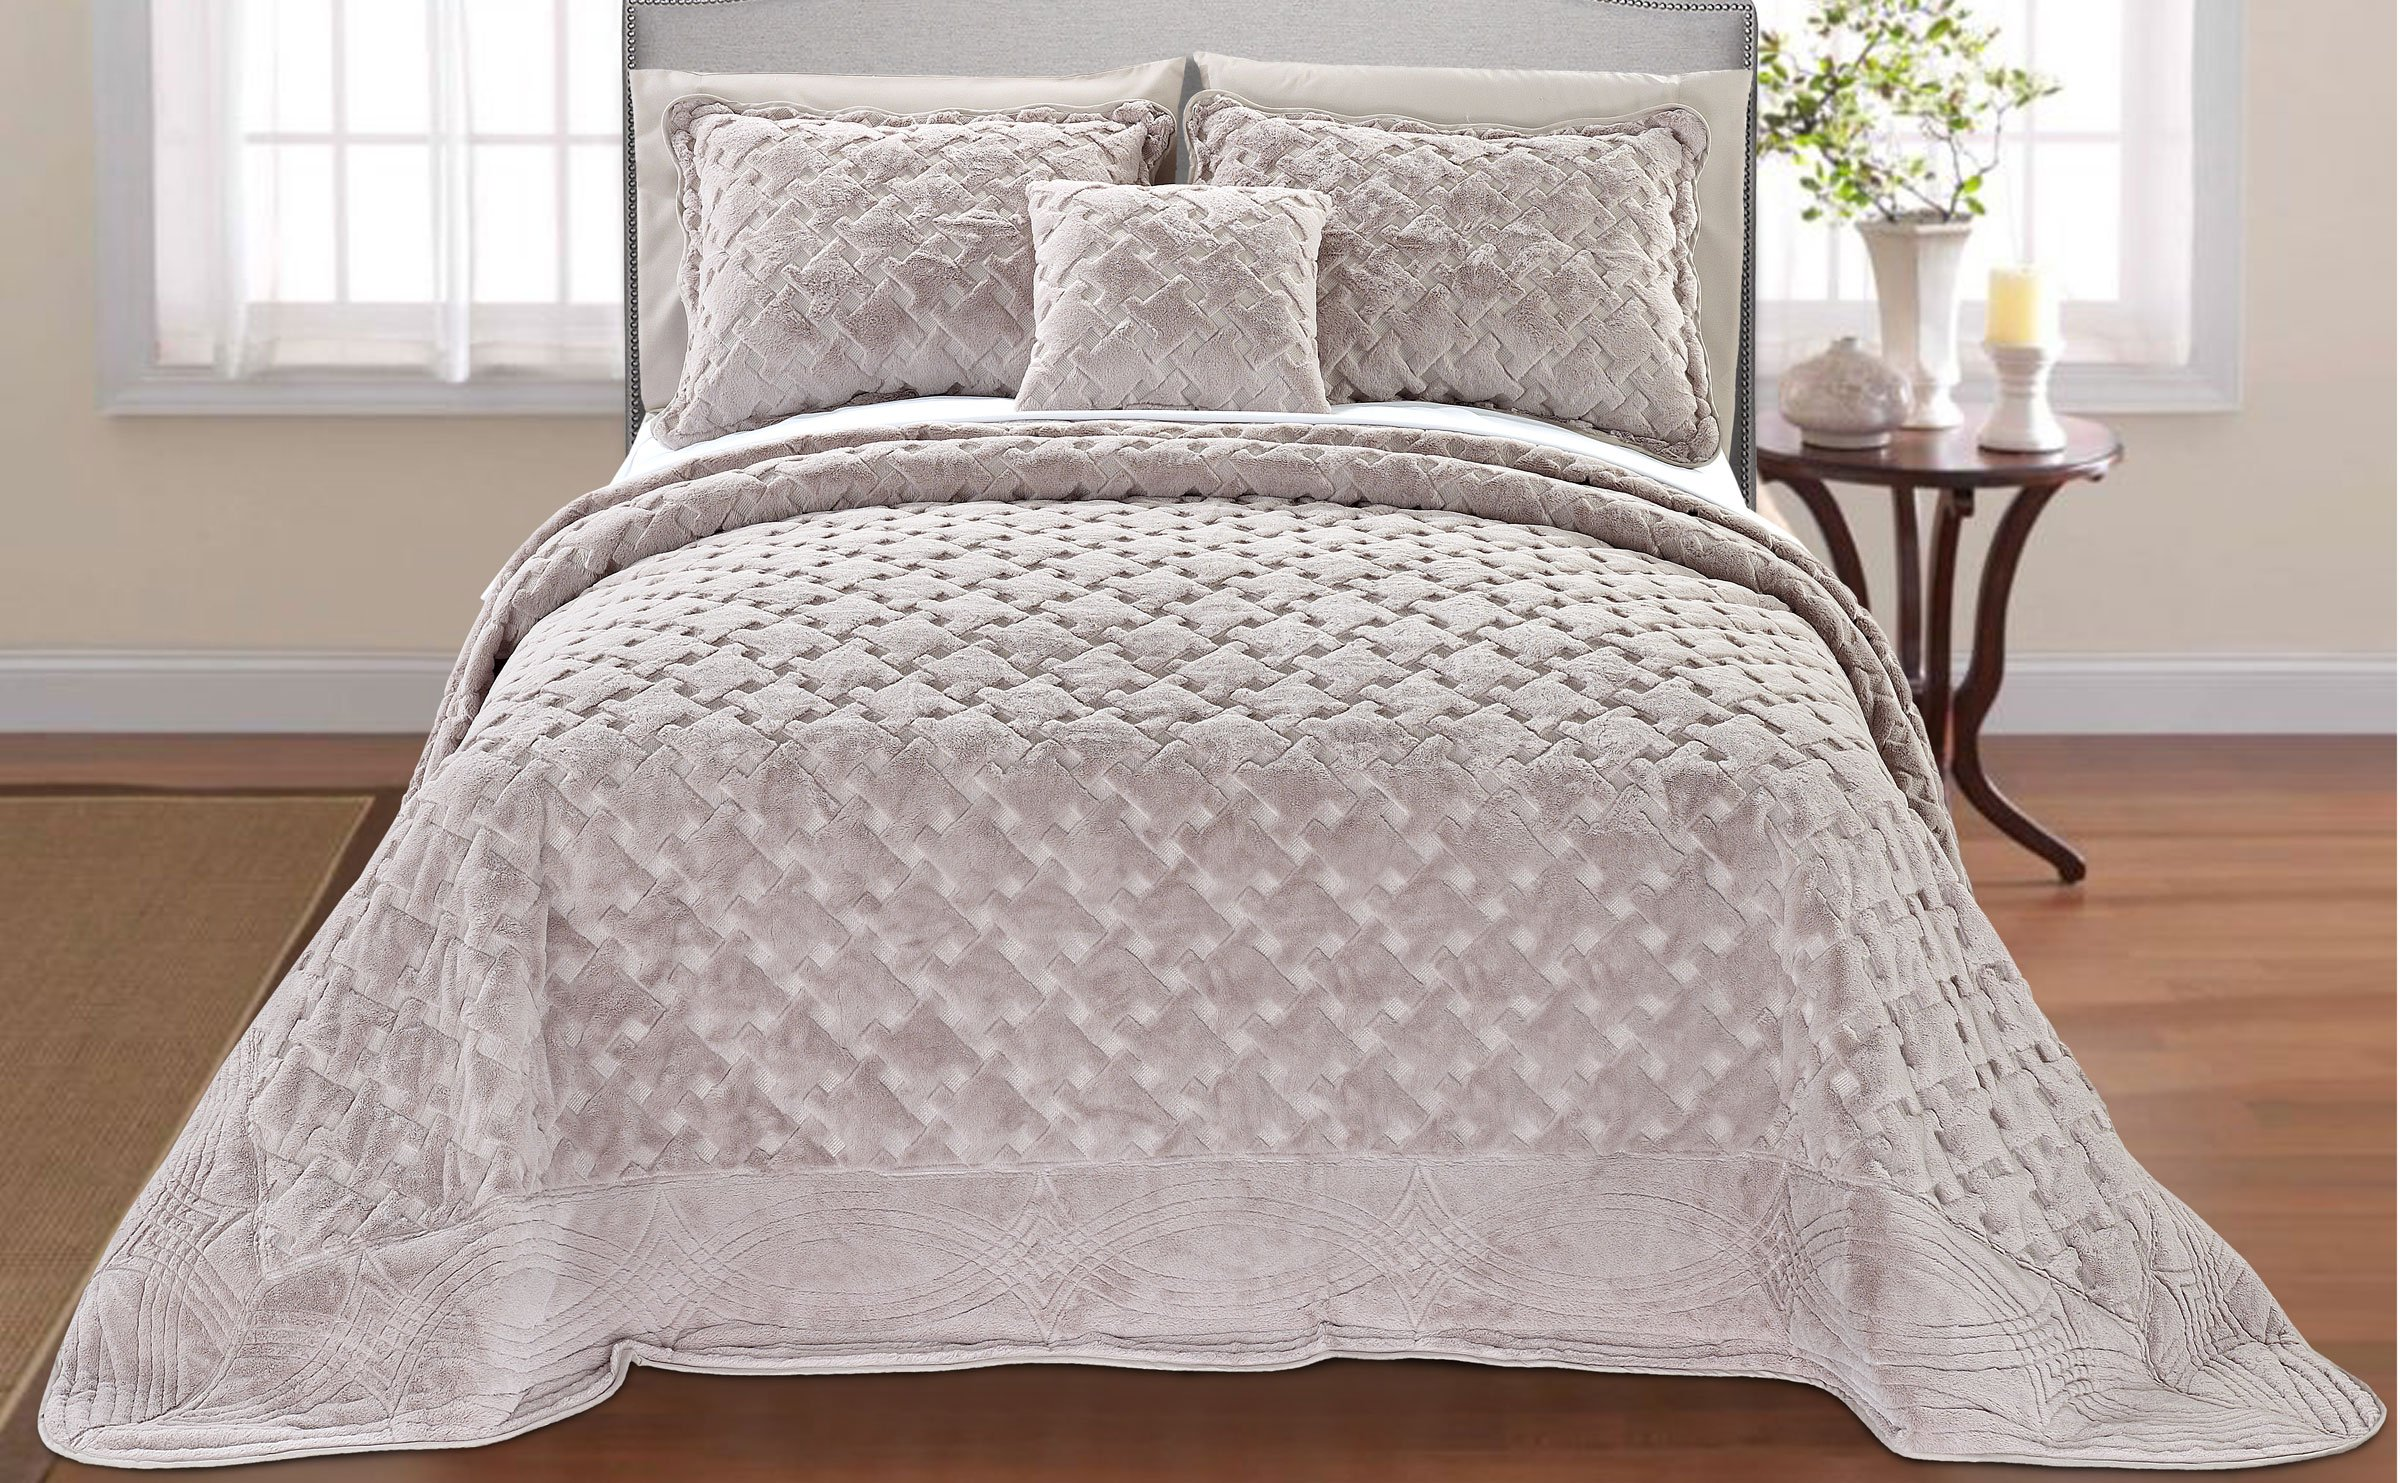 Serenta Faux Fur Quilted Tatami 4 Piece Bedspread Set, King, Taupe